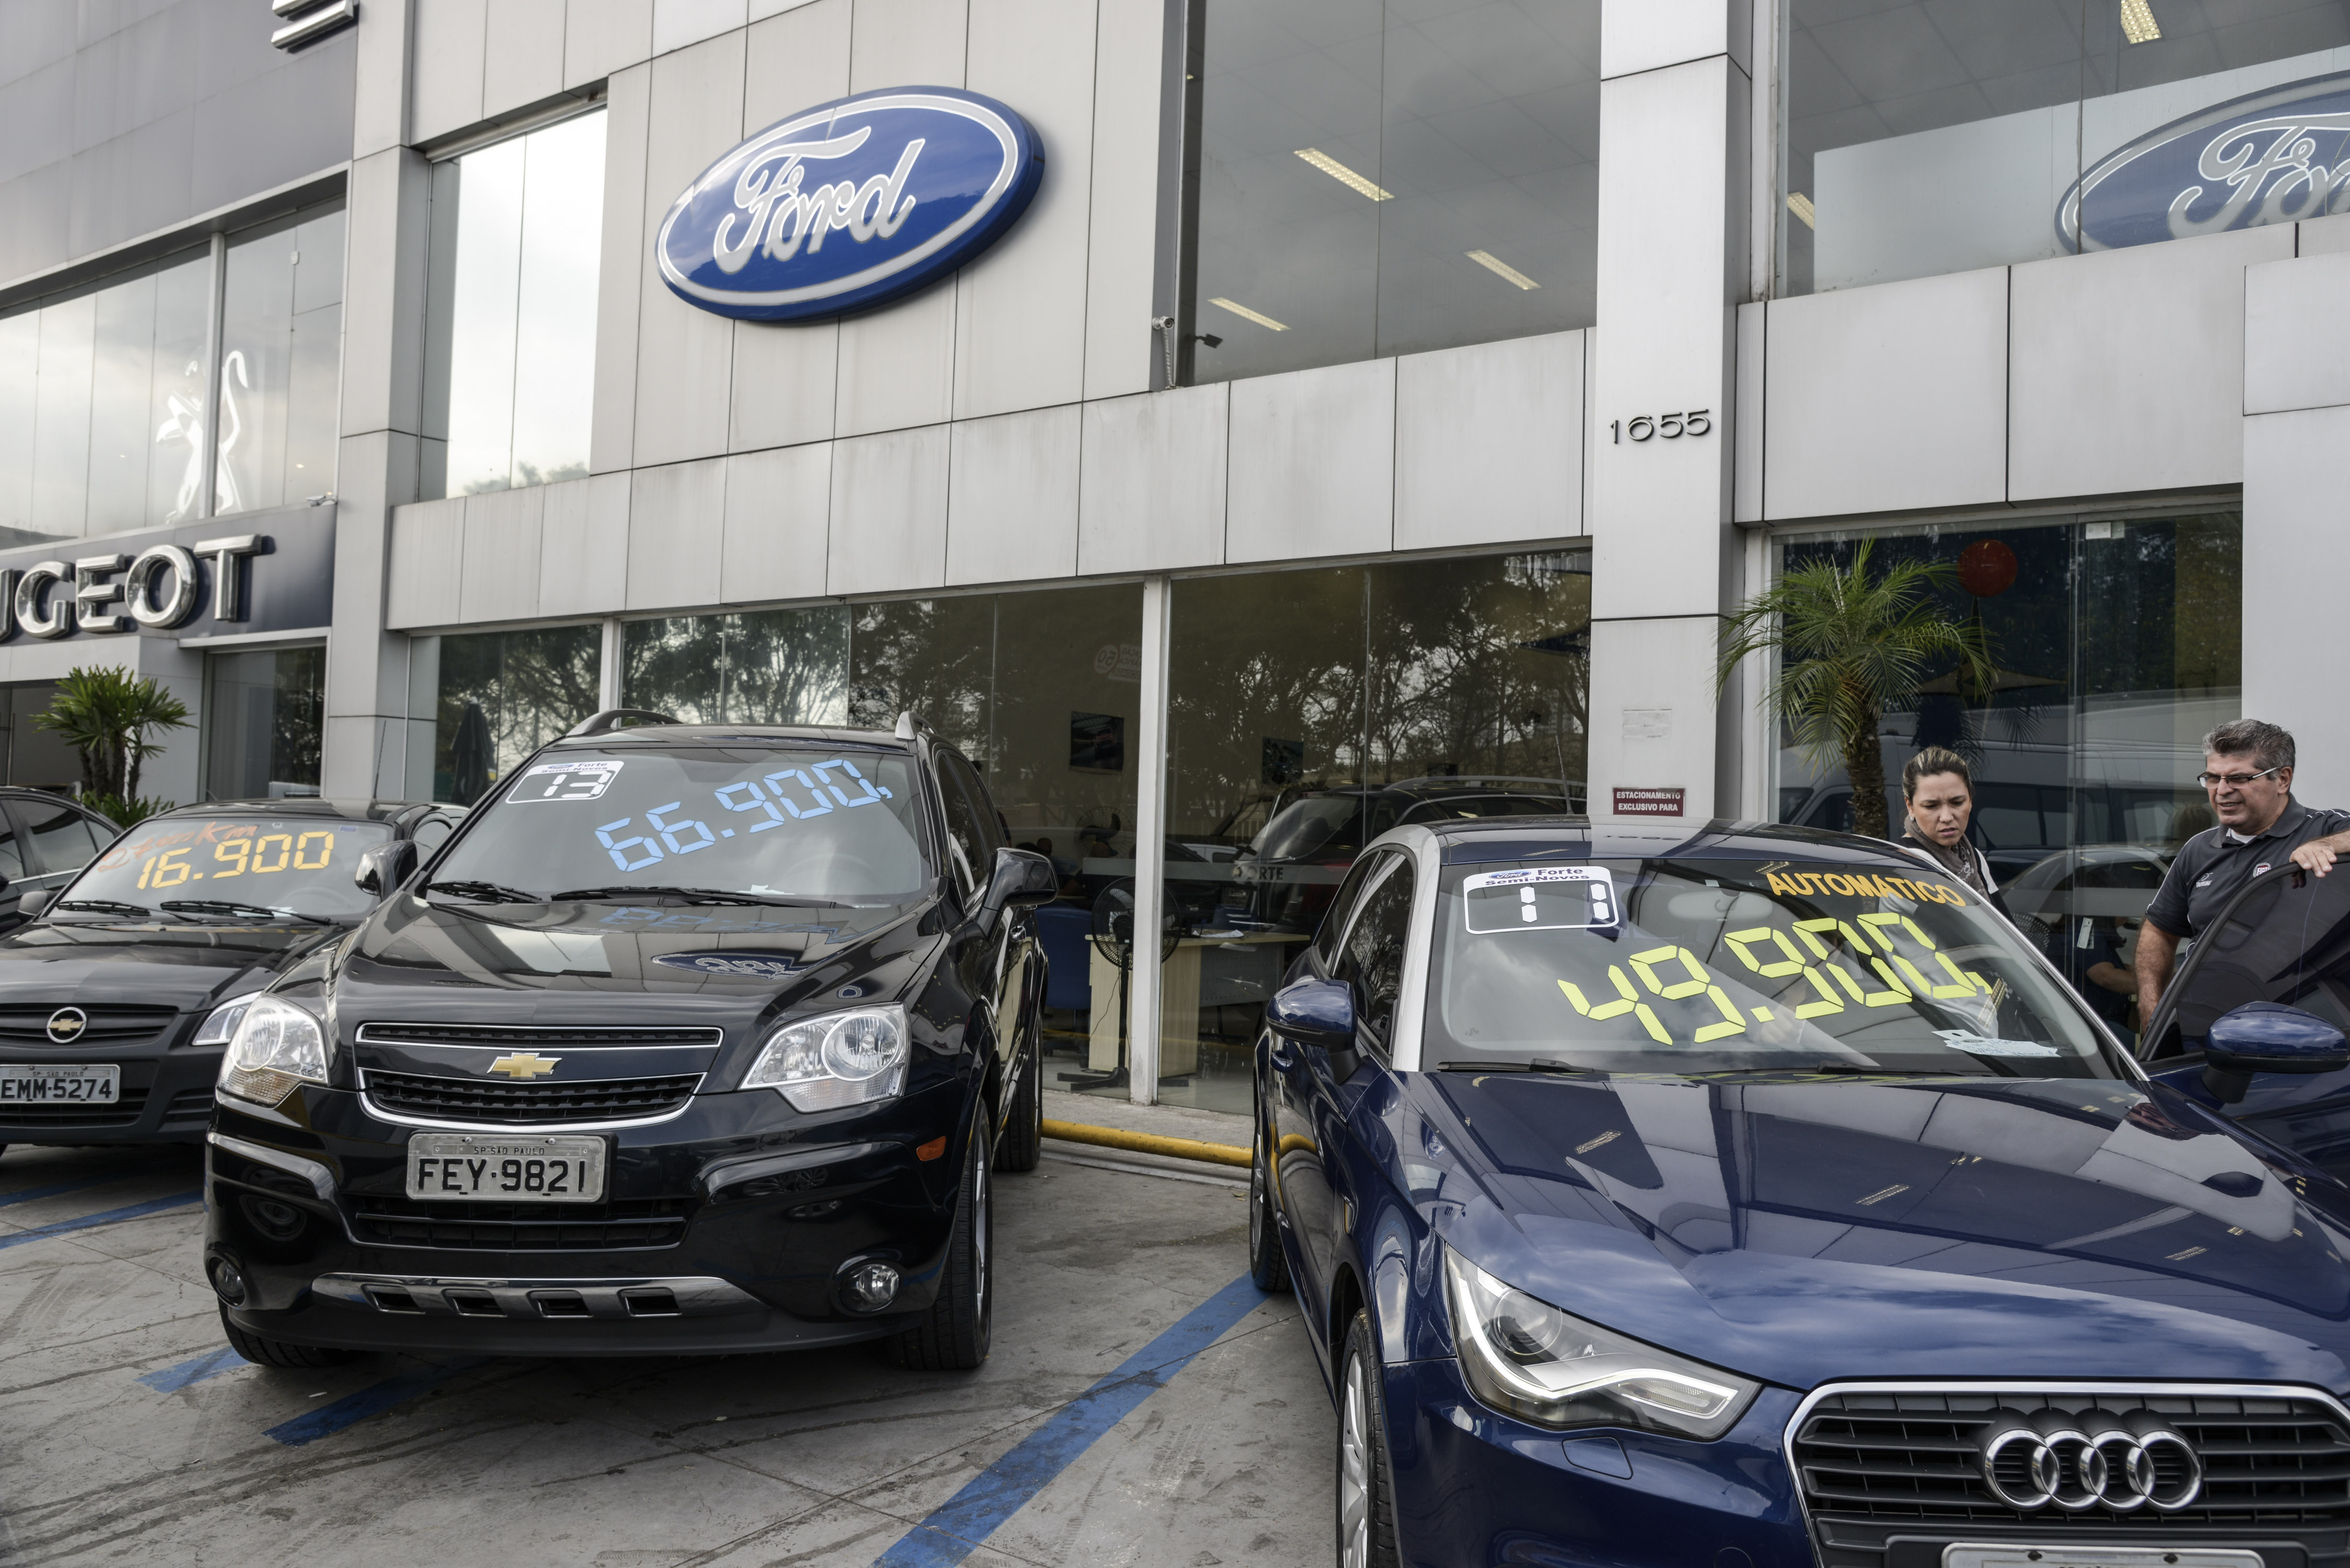 Operations Inside Brazilian Car Dealerships As Economists See Slower Inflation and Lower Rates in 2017